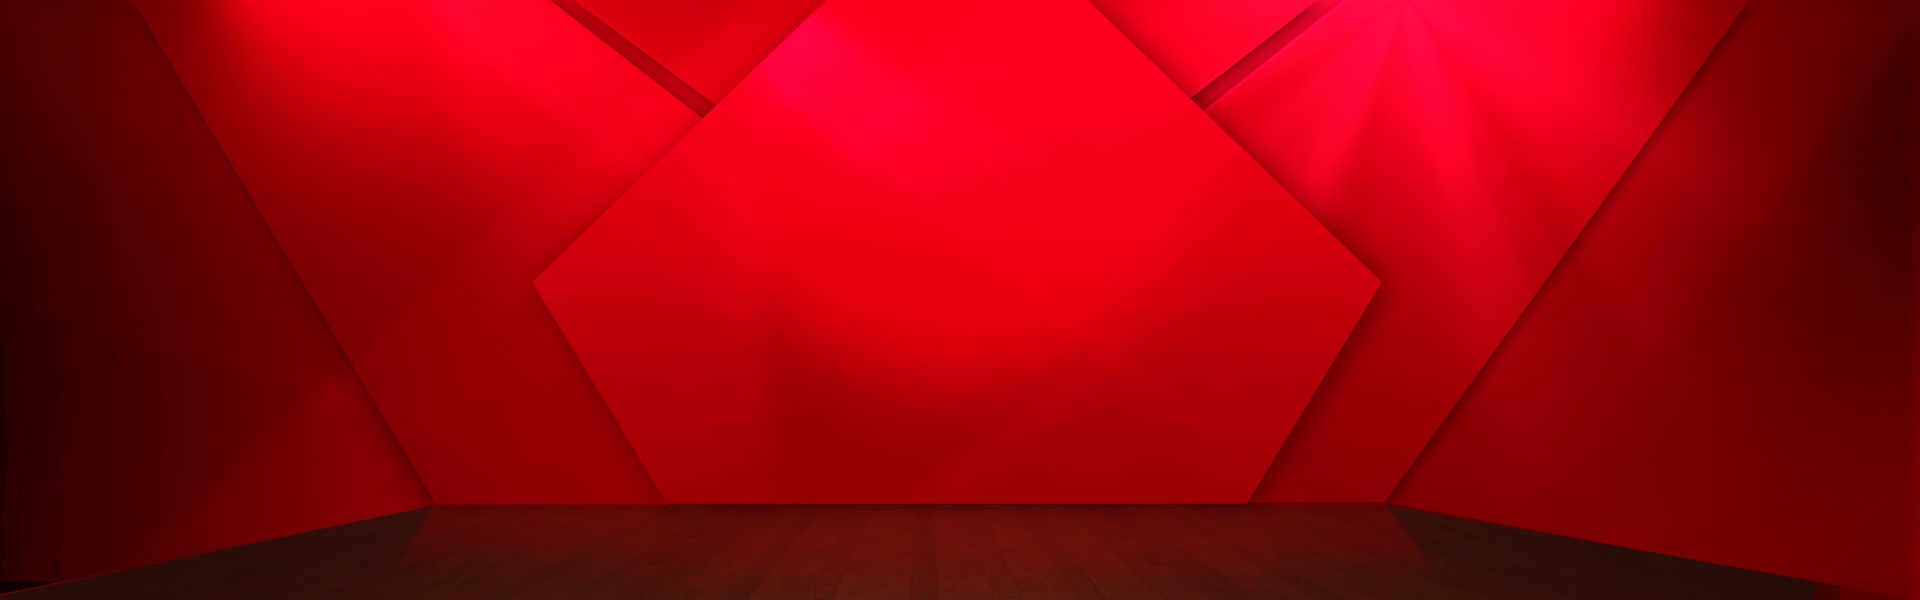 simple red background  geometry  abstract  simple background image for free download